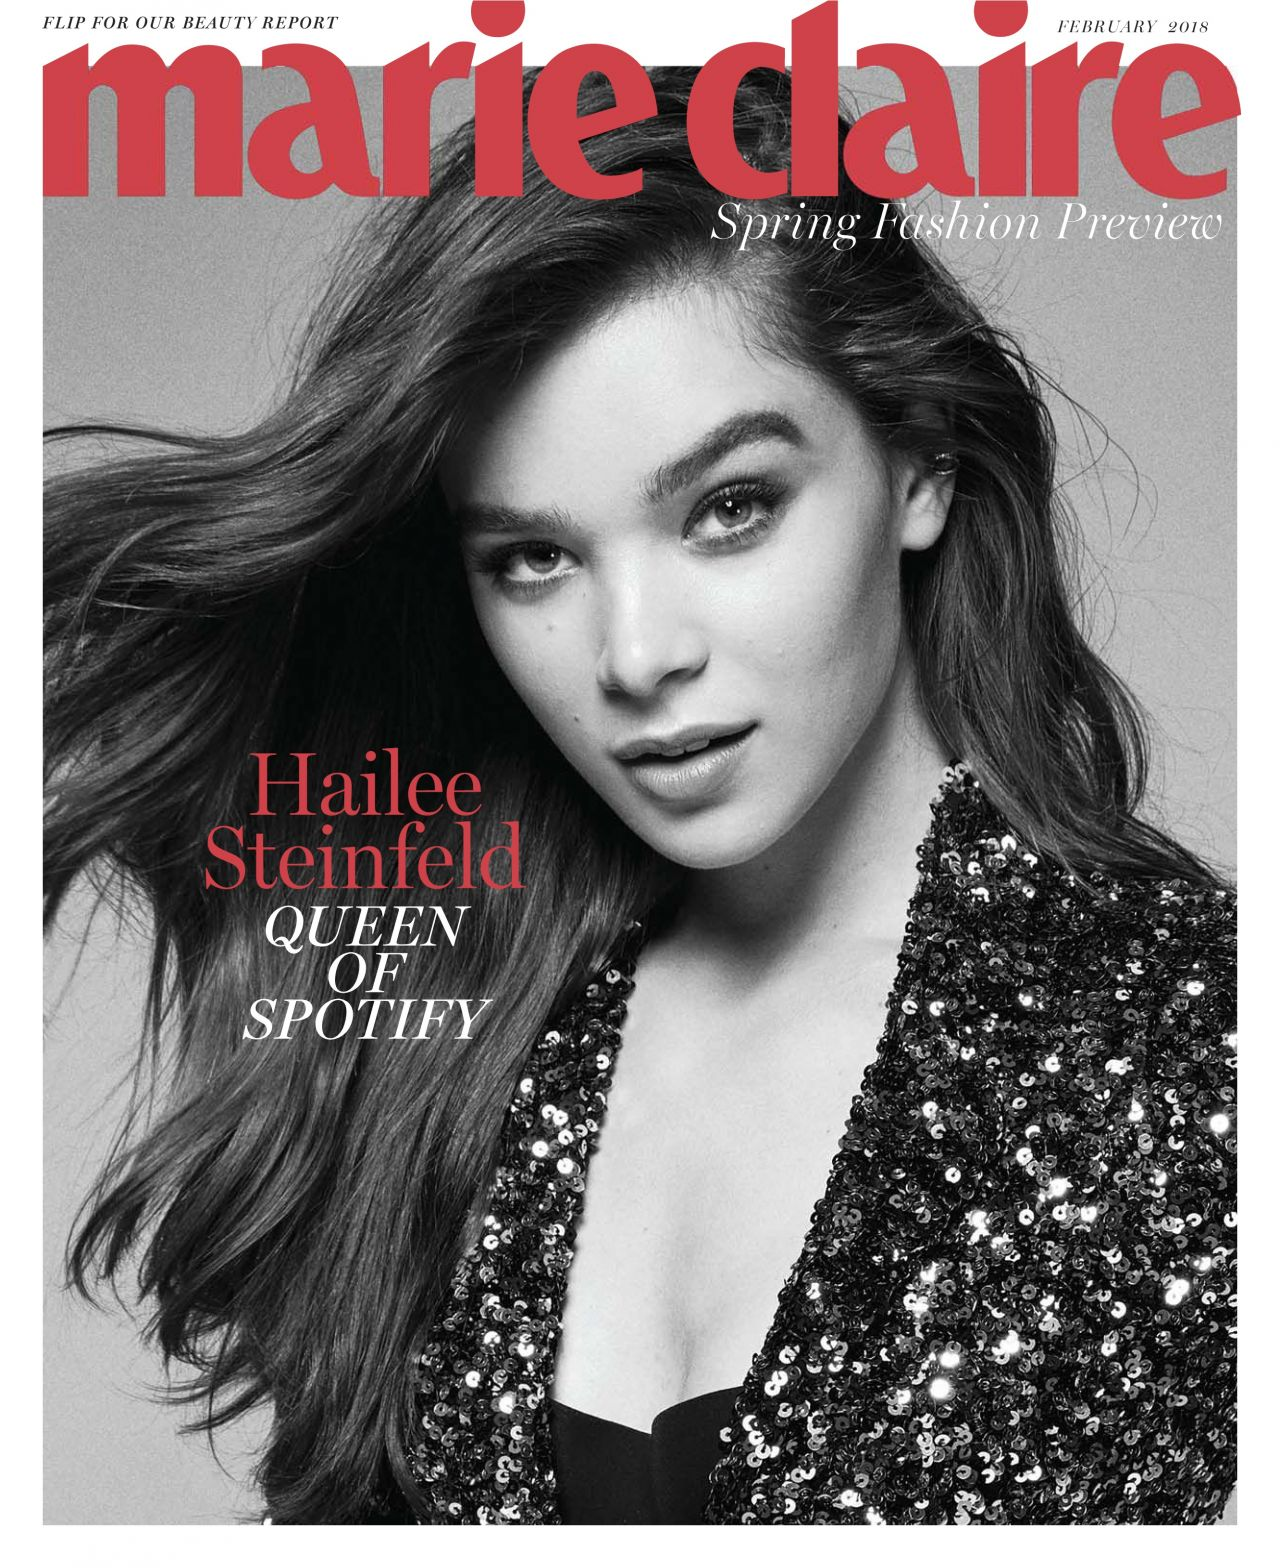 Hailee Steinfeld in Marie Claire Magazine - February 2018